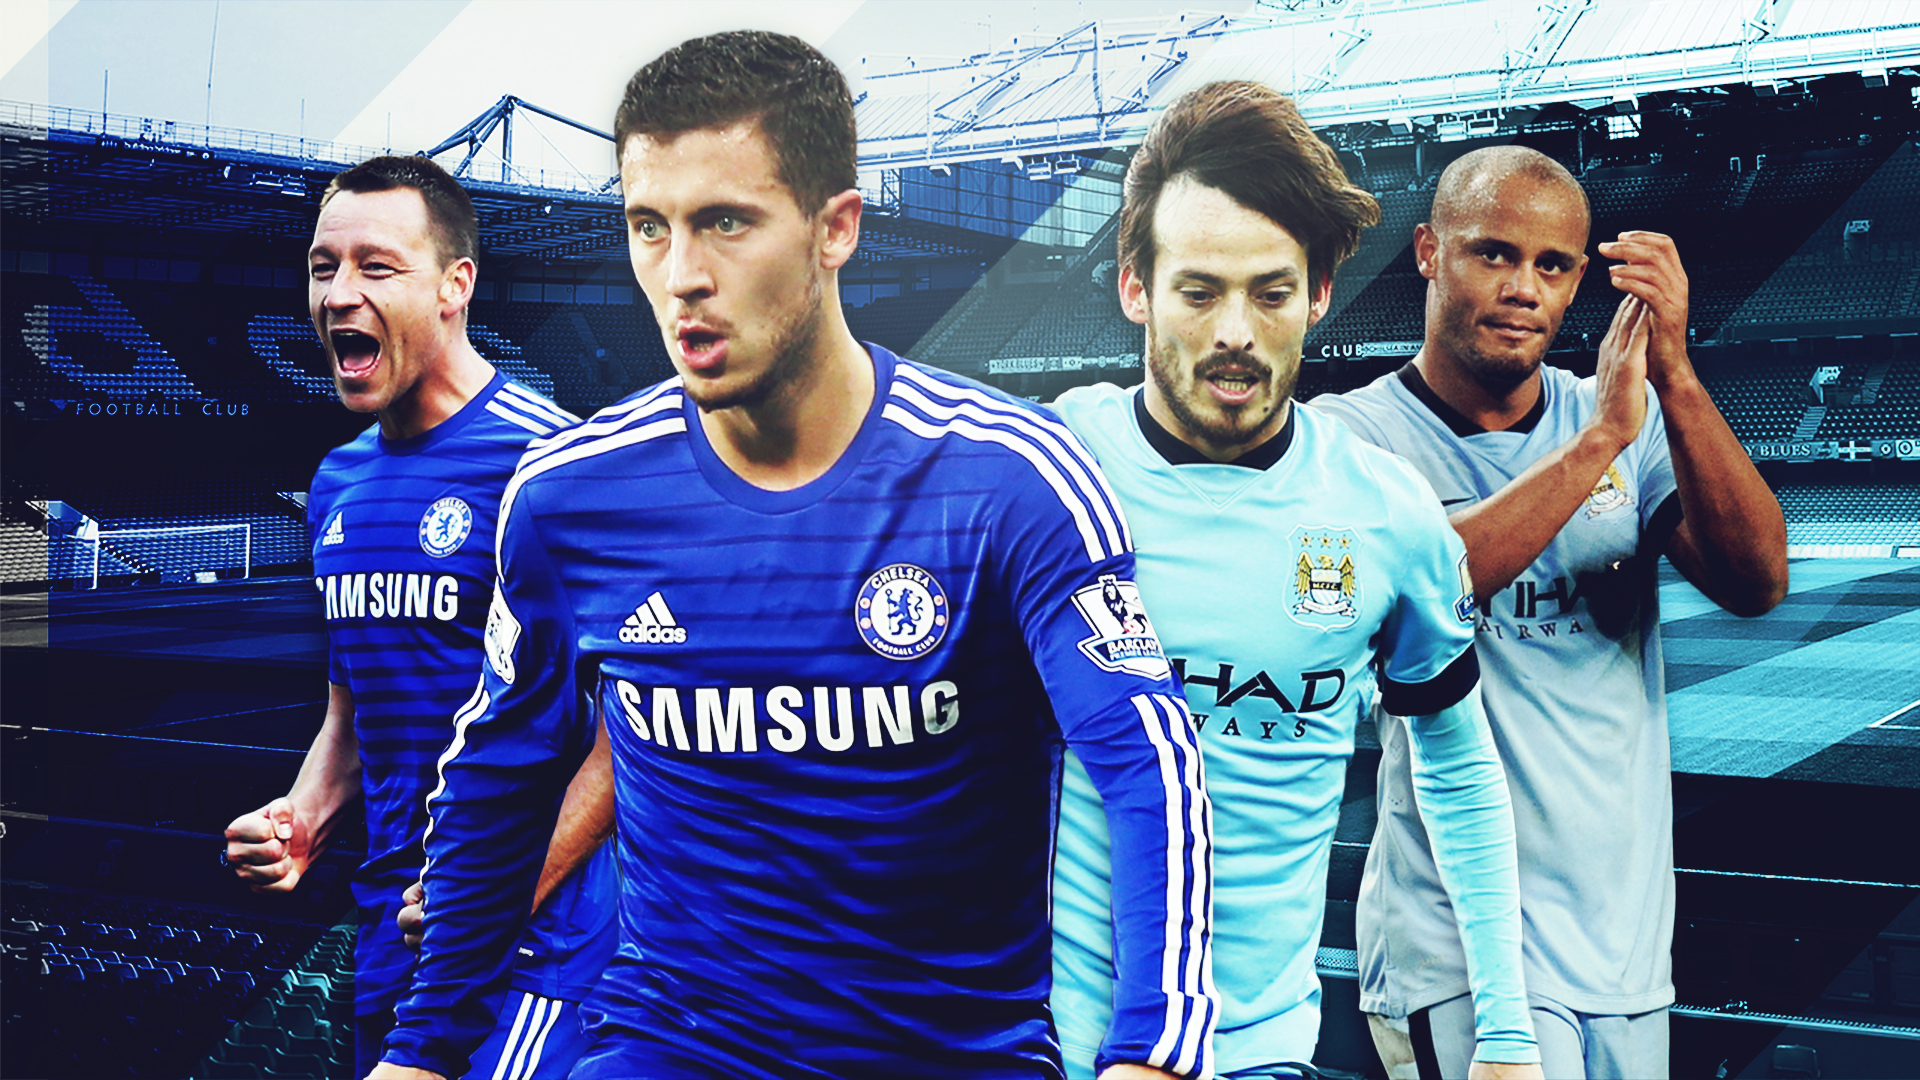 Chelsea Vs Manchester City Head To Head, April 16, 2016